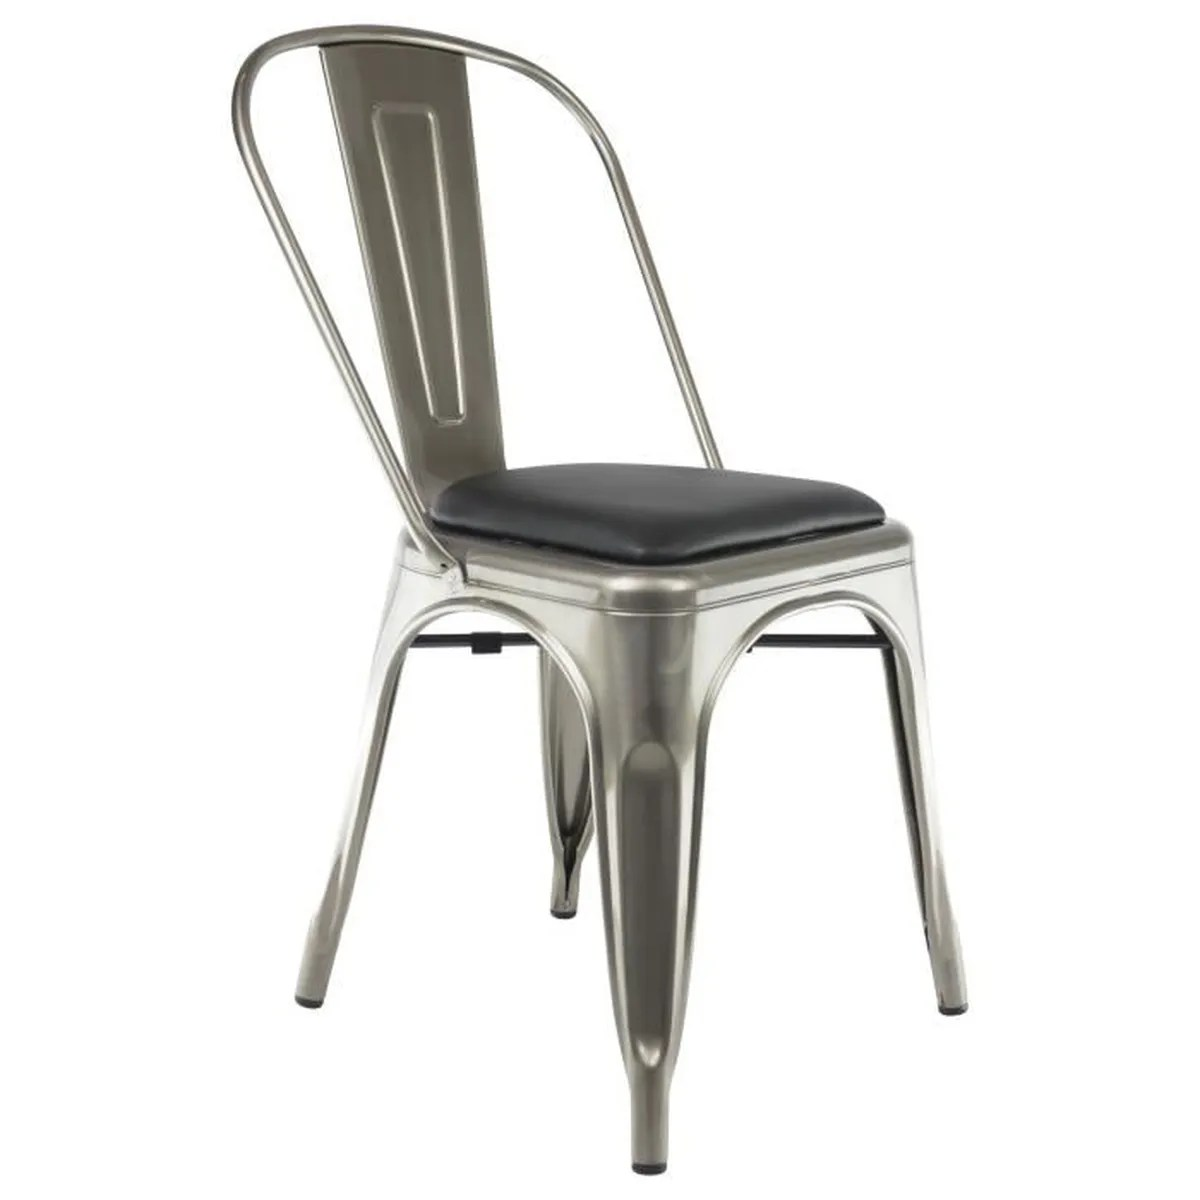 Chaises Privee Chaise Privee Chaise Industrielle Bistro Gris Brut